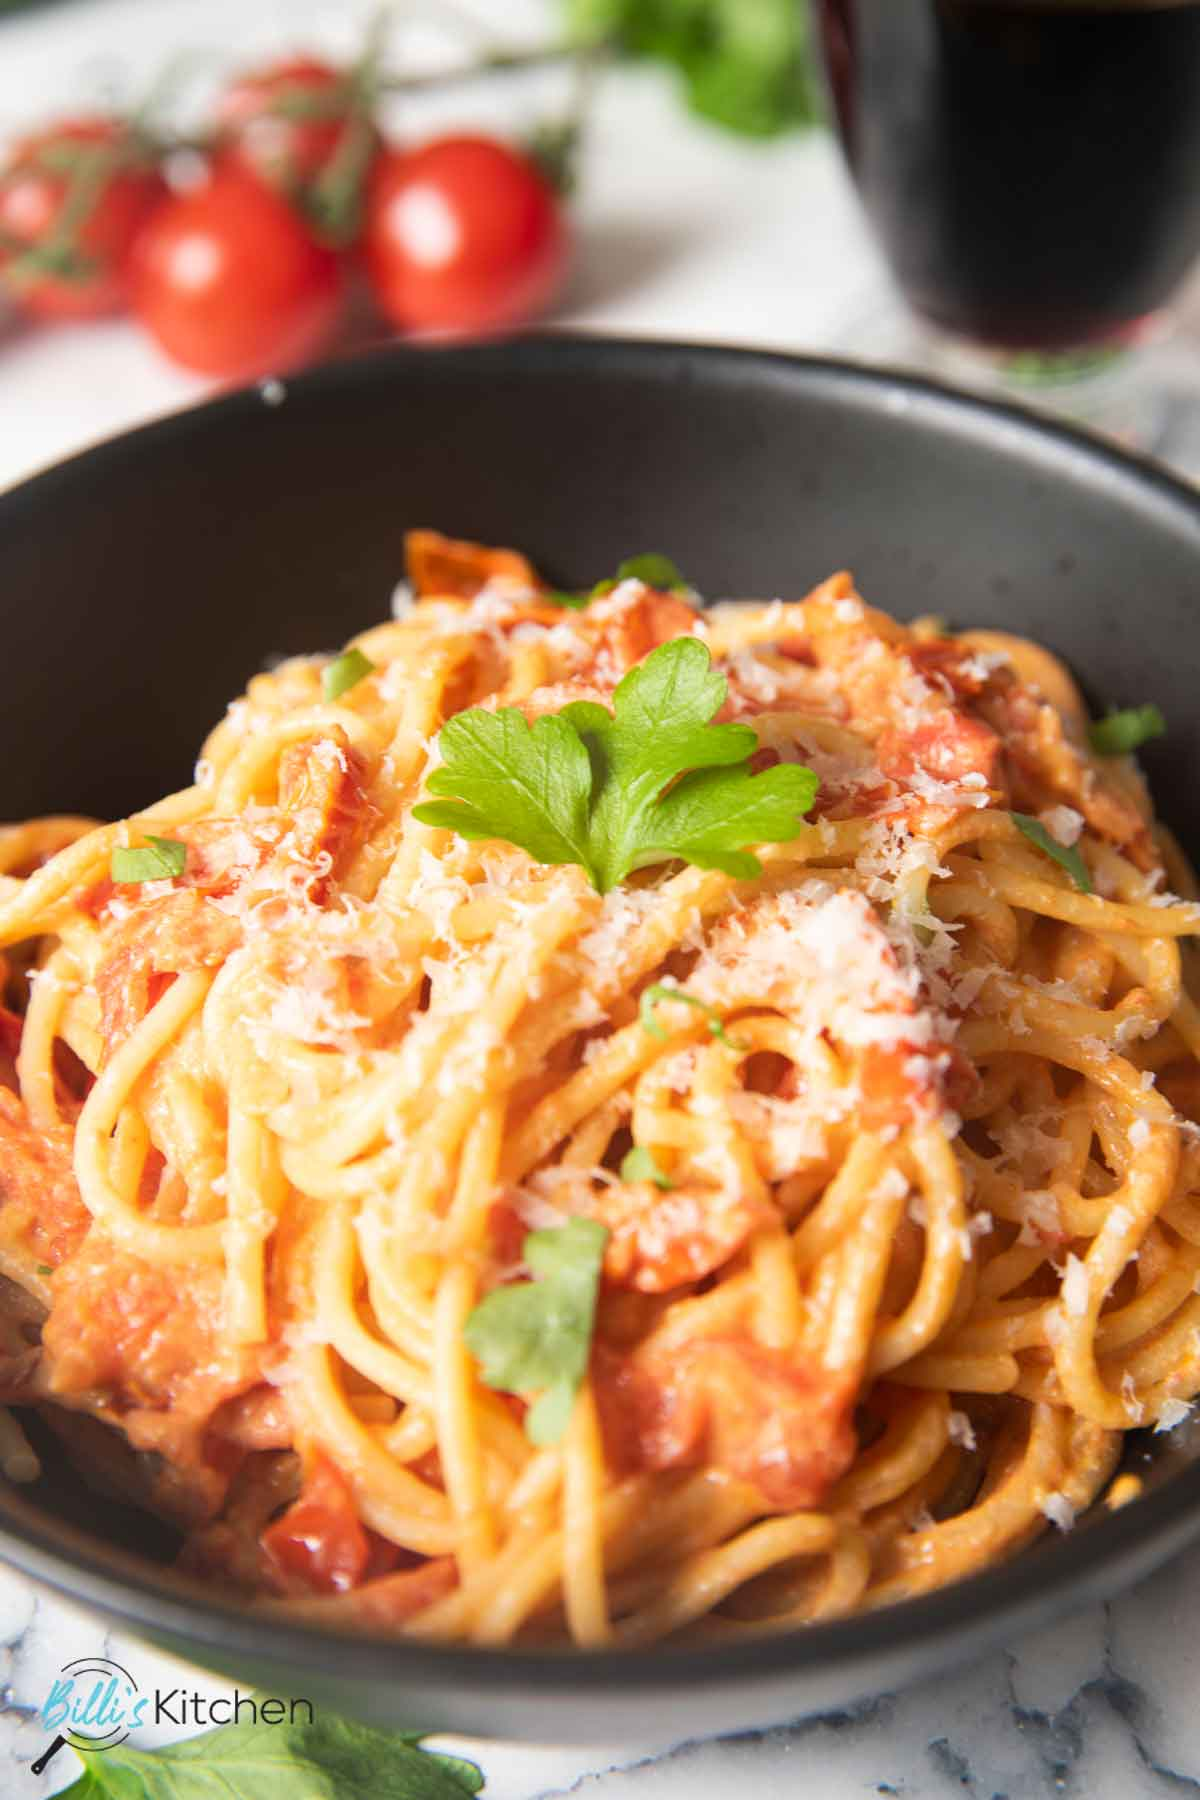 A closer shot of a bowl of tomato and mascarpone pasta, with grated Parmigiano Reggiano on top.